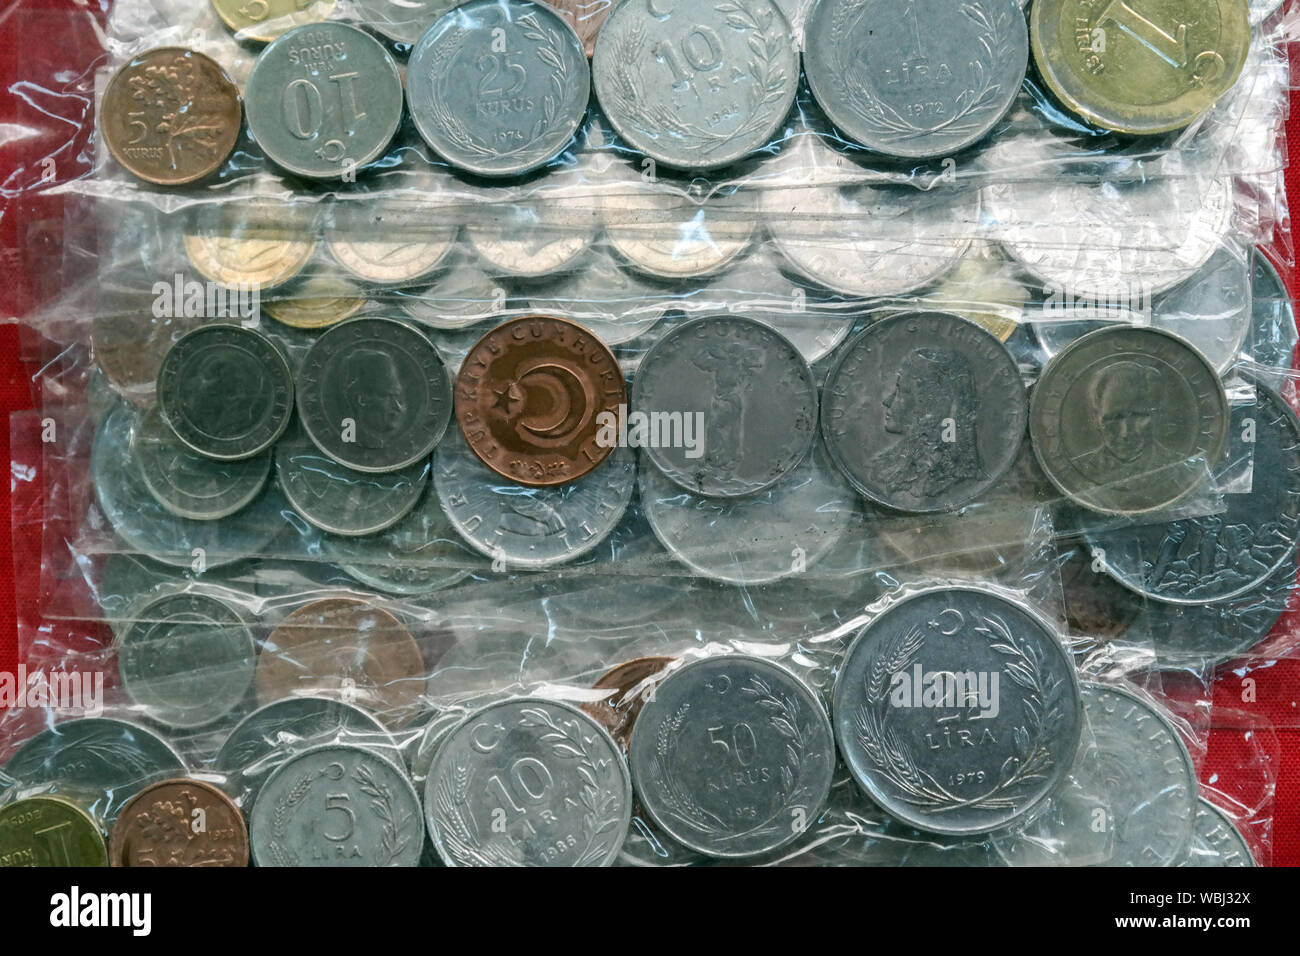 Old Turkish money at the antique shop in Istanbul, Turkey. Stock Photo